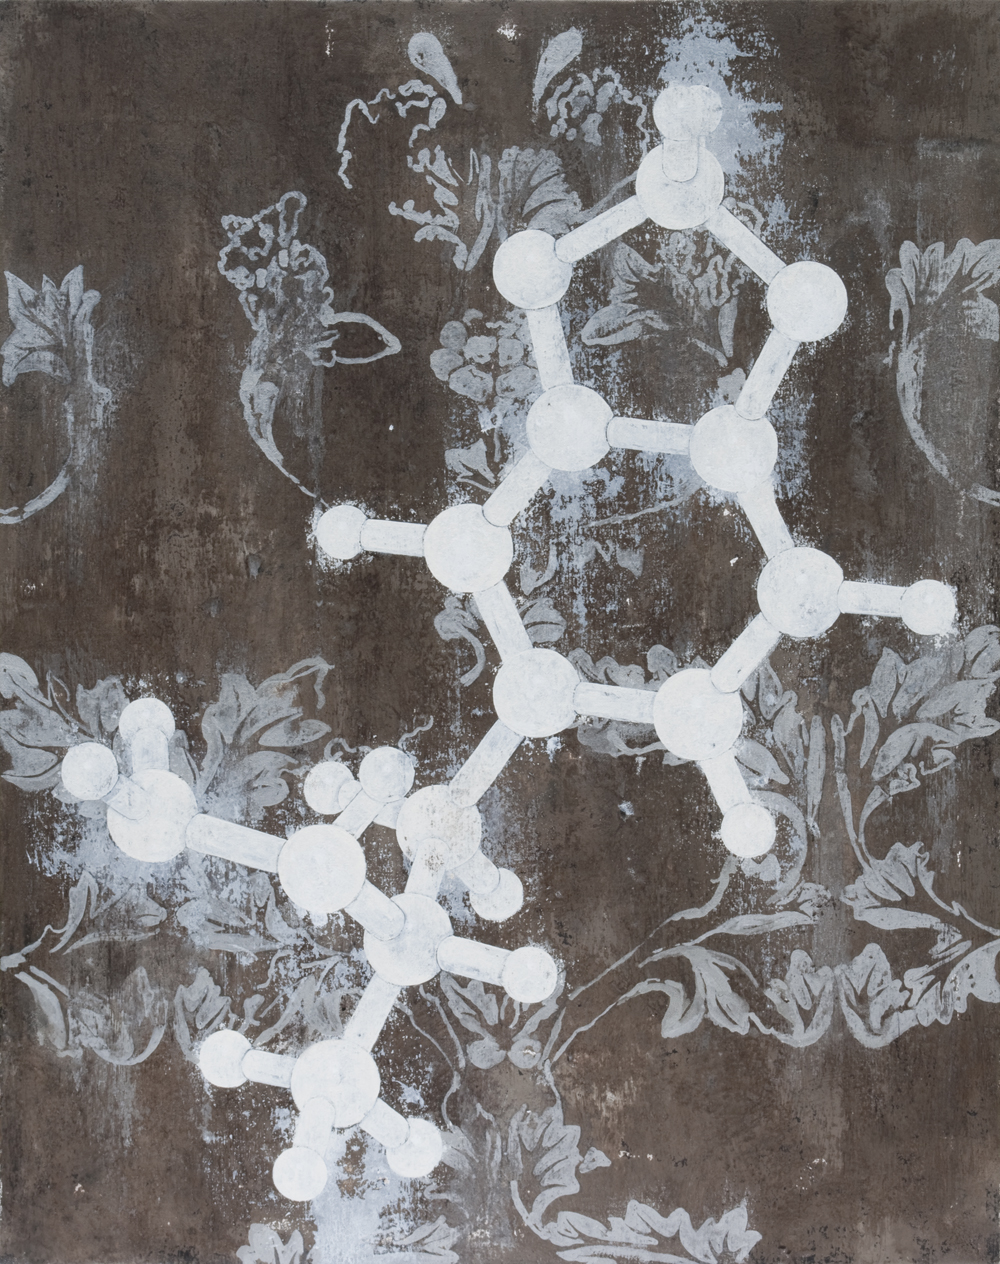 XTC Molecular Structure, 2010 92 x 73 cm / 36 x 28 inches Pigments / Canvas